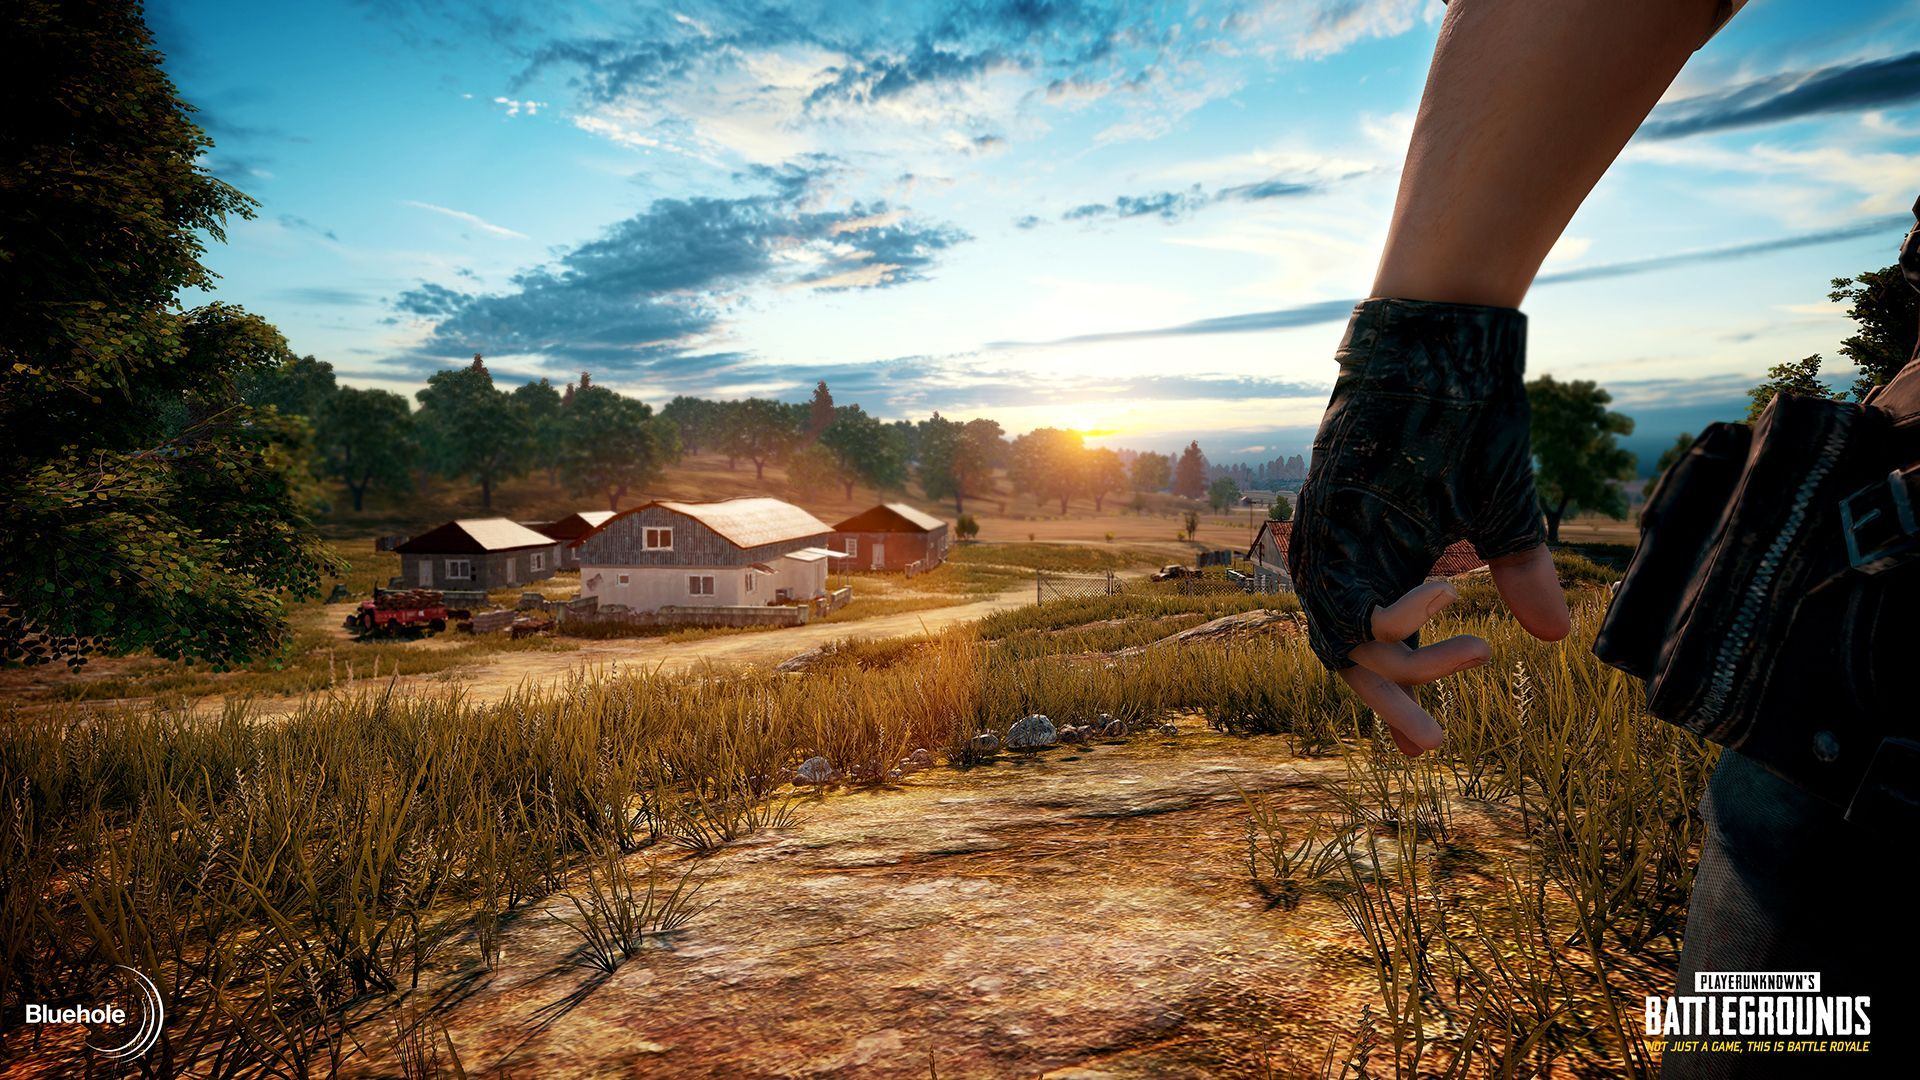 Download This Awesome Wallpaper Wallpaper Cave Best Wallpapers Android Hd Wallpaper Phone Wallpaper Wallpaper cave pubg wallpaper full hd 4k